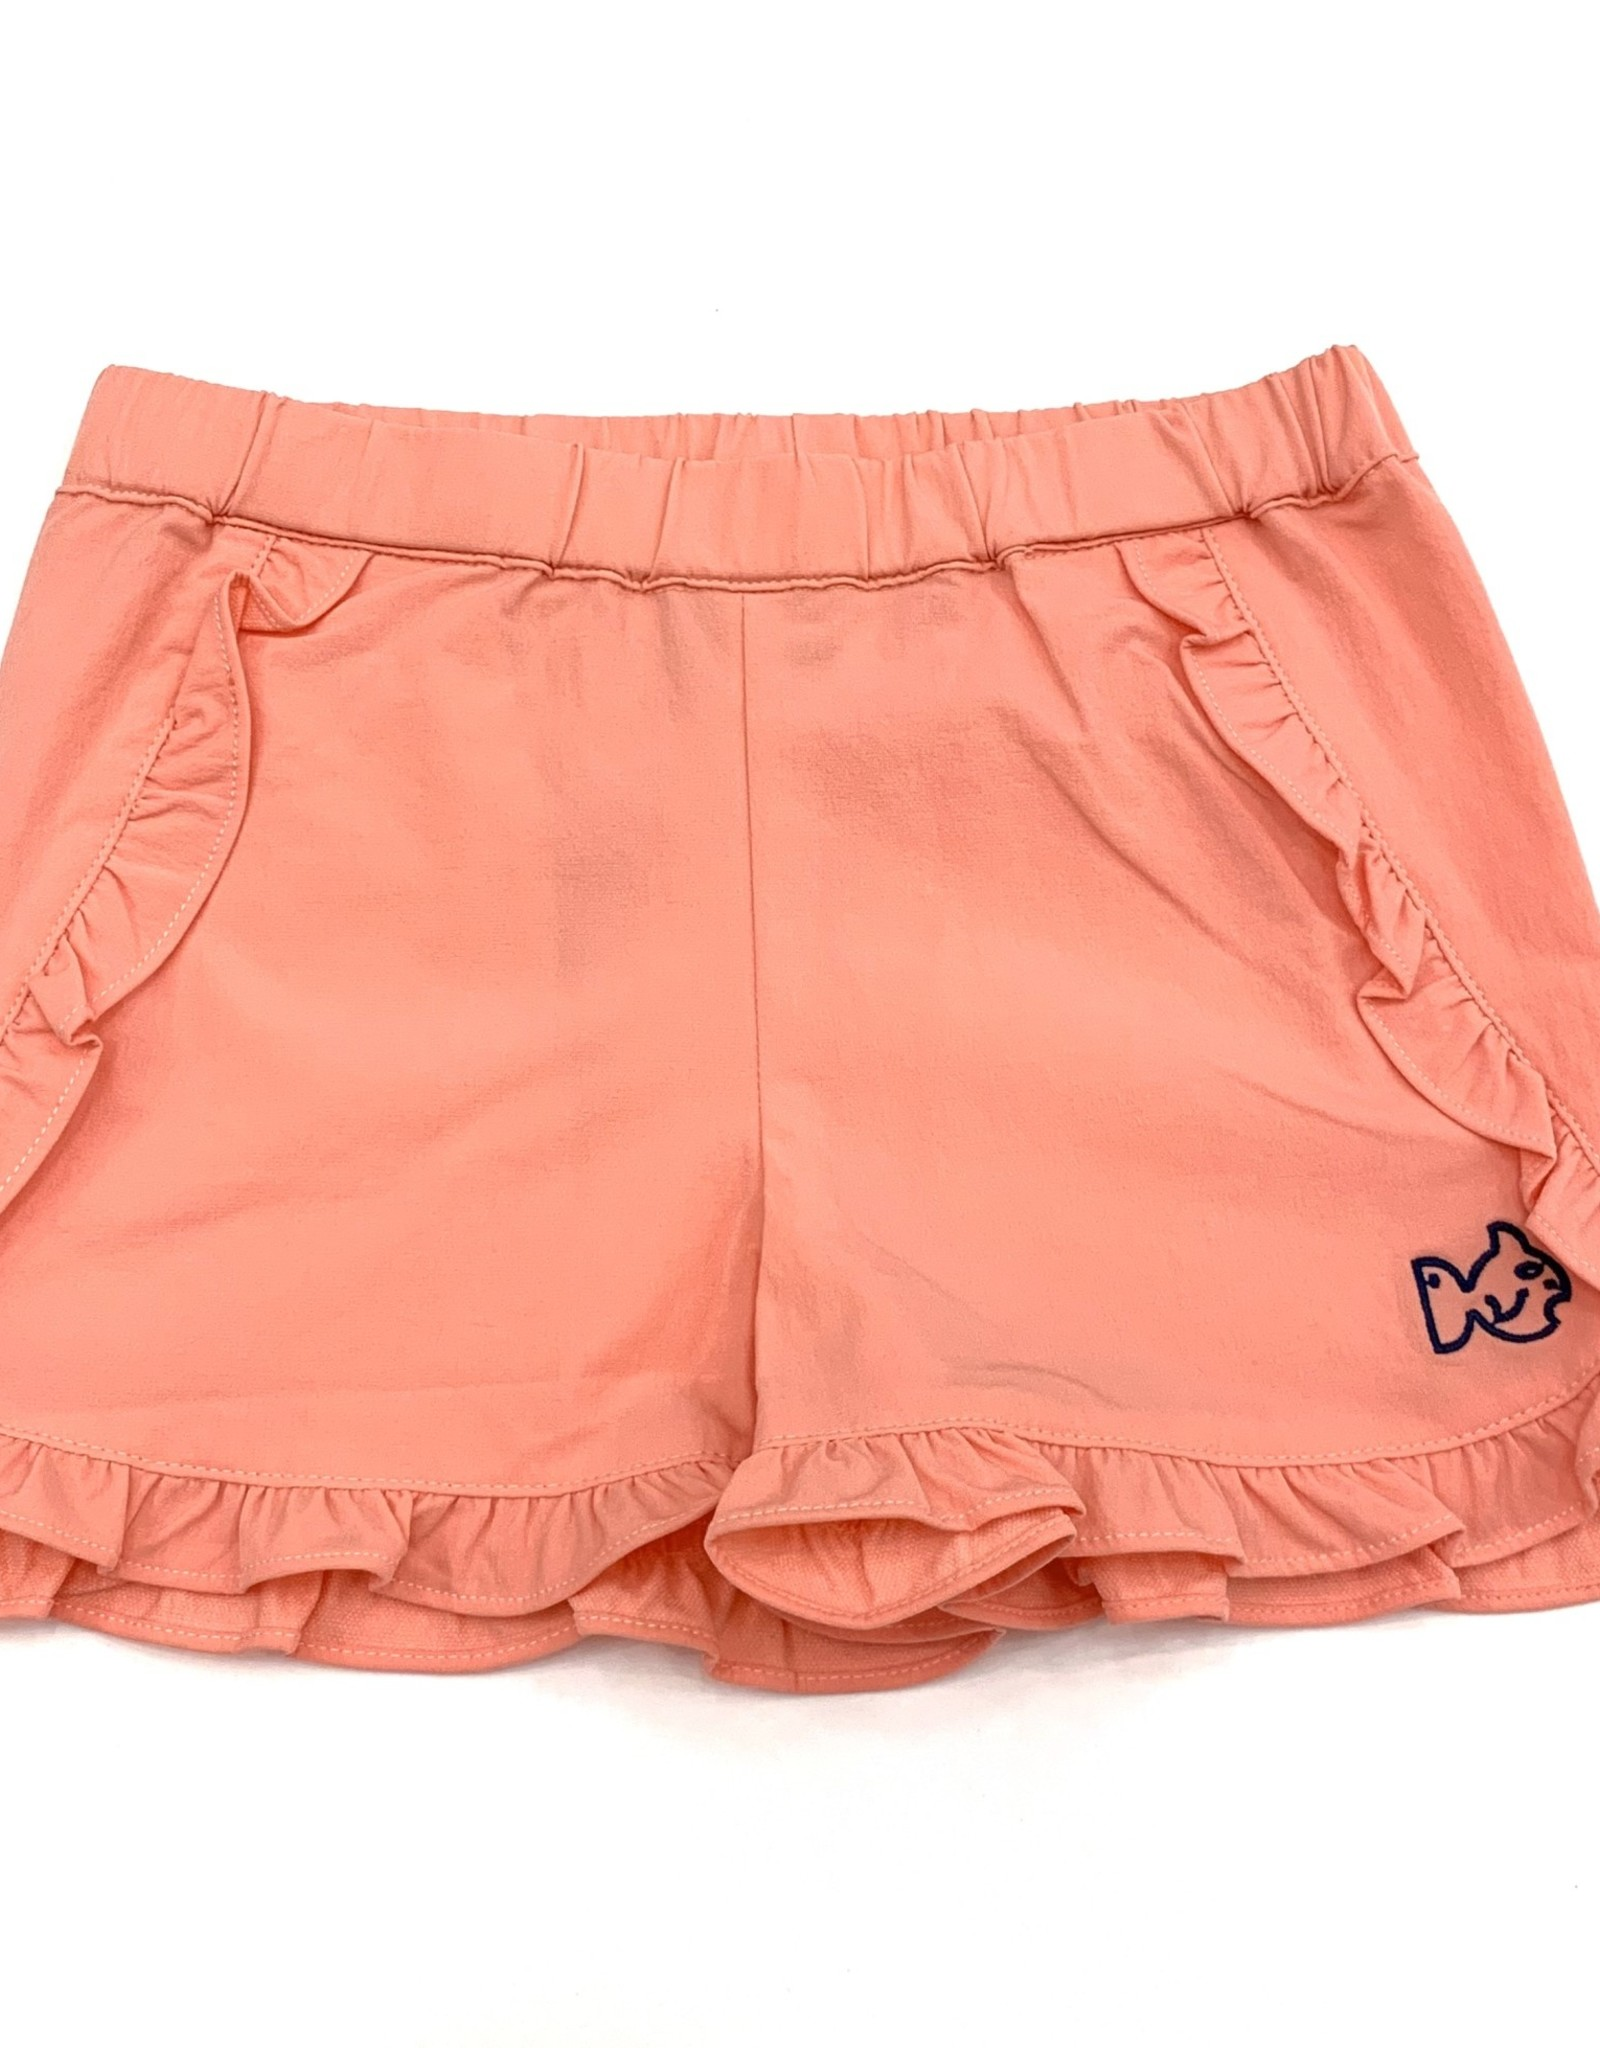 Prodoh Pink Stretch Short